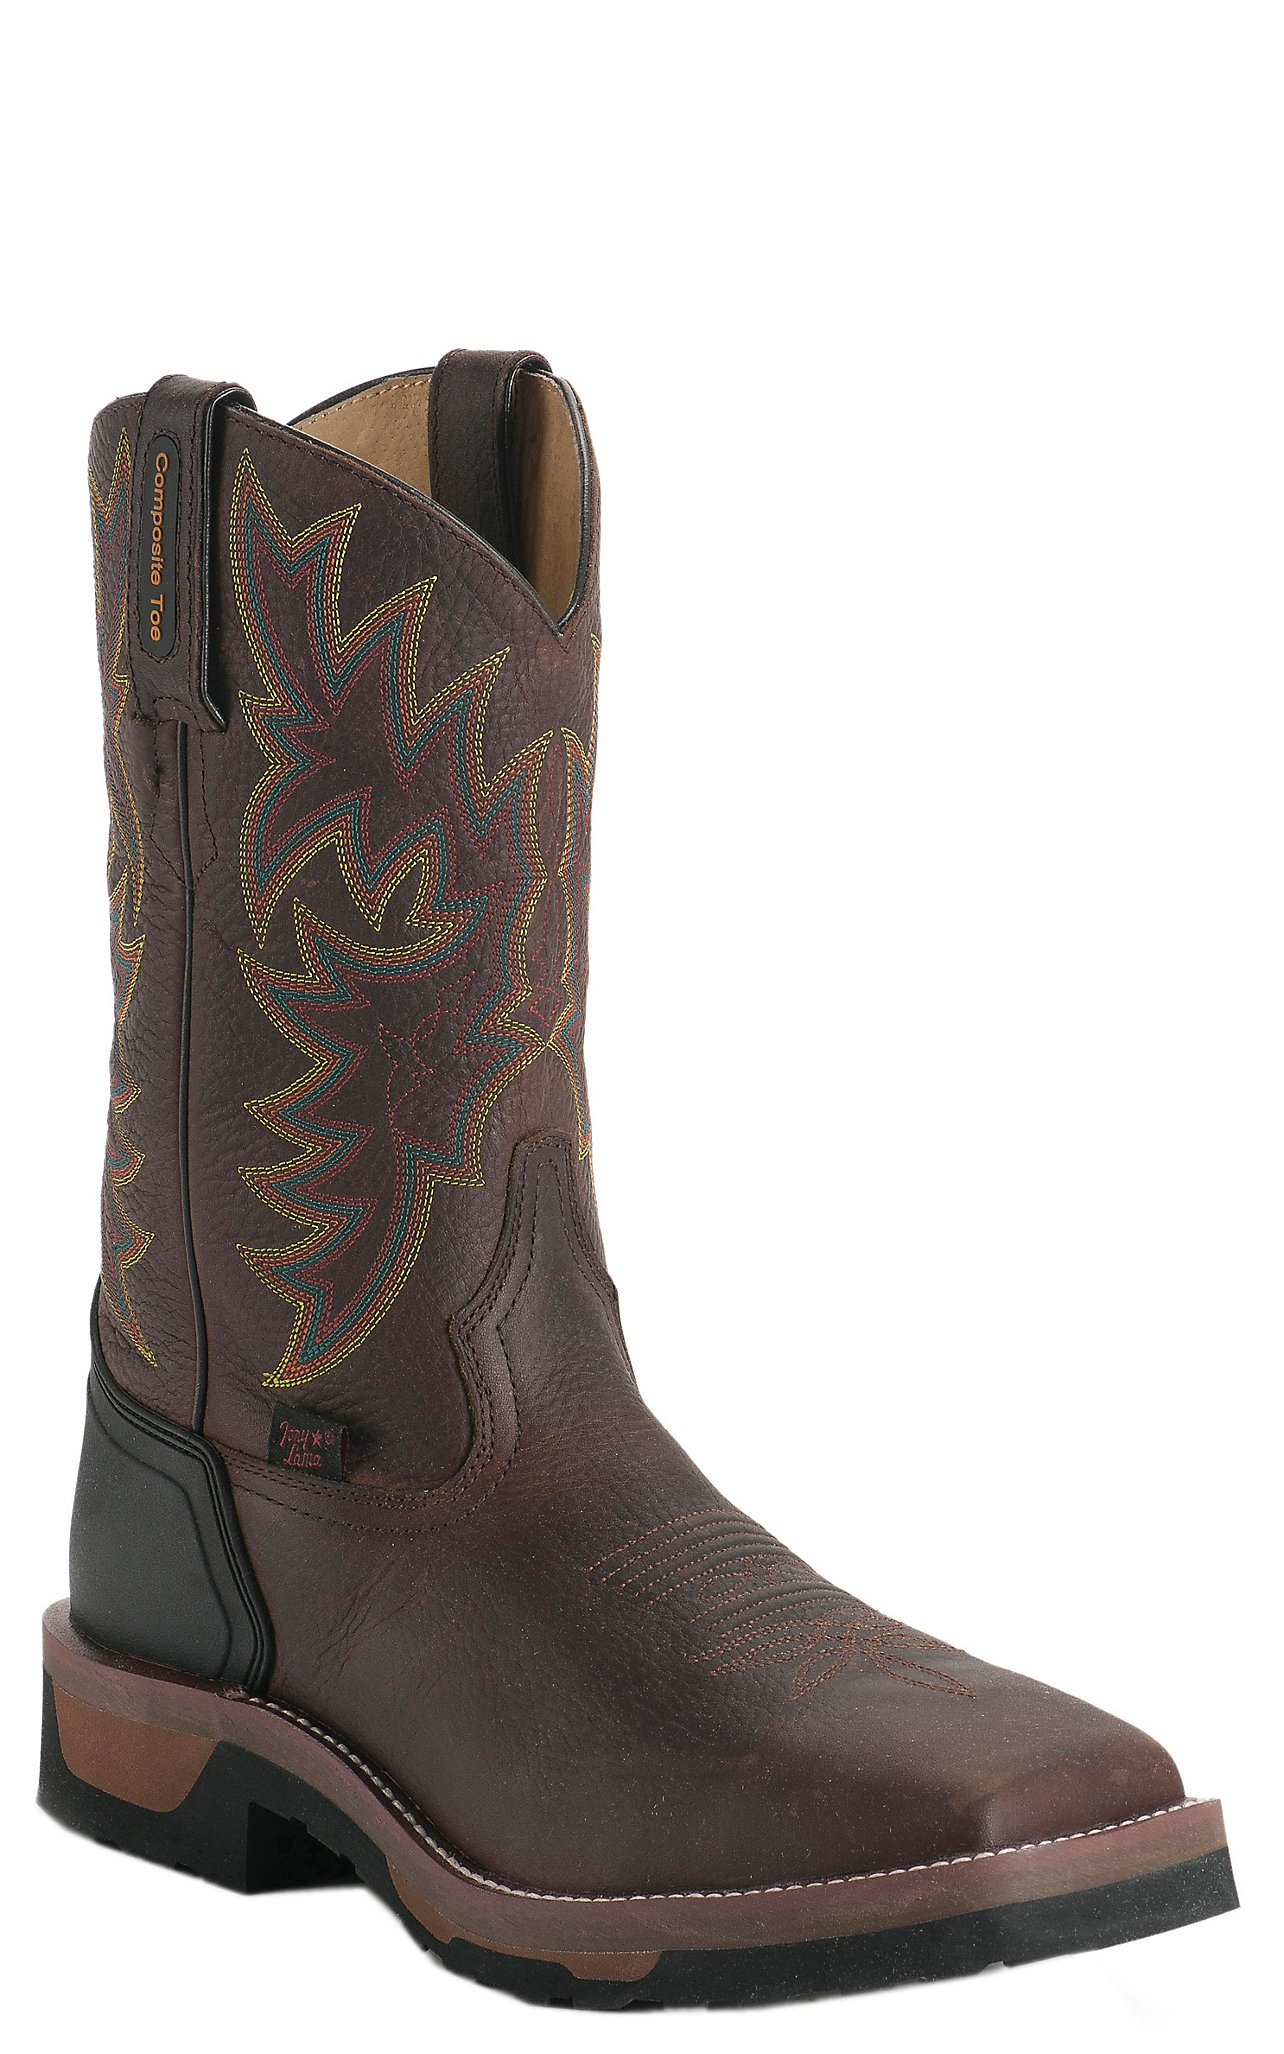 Shop Tony Lama Boots | Free Shipping on Boots | Cavender's